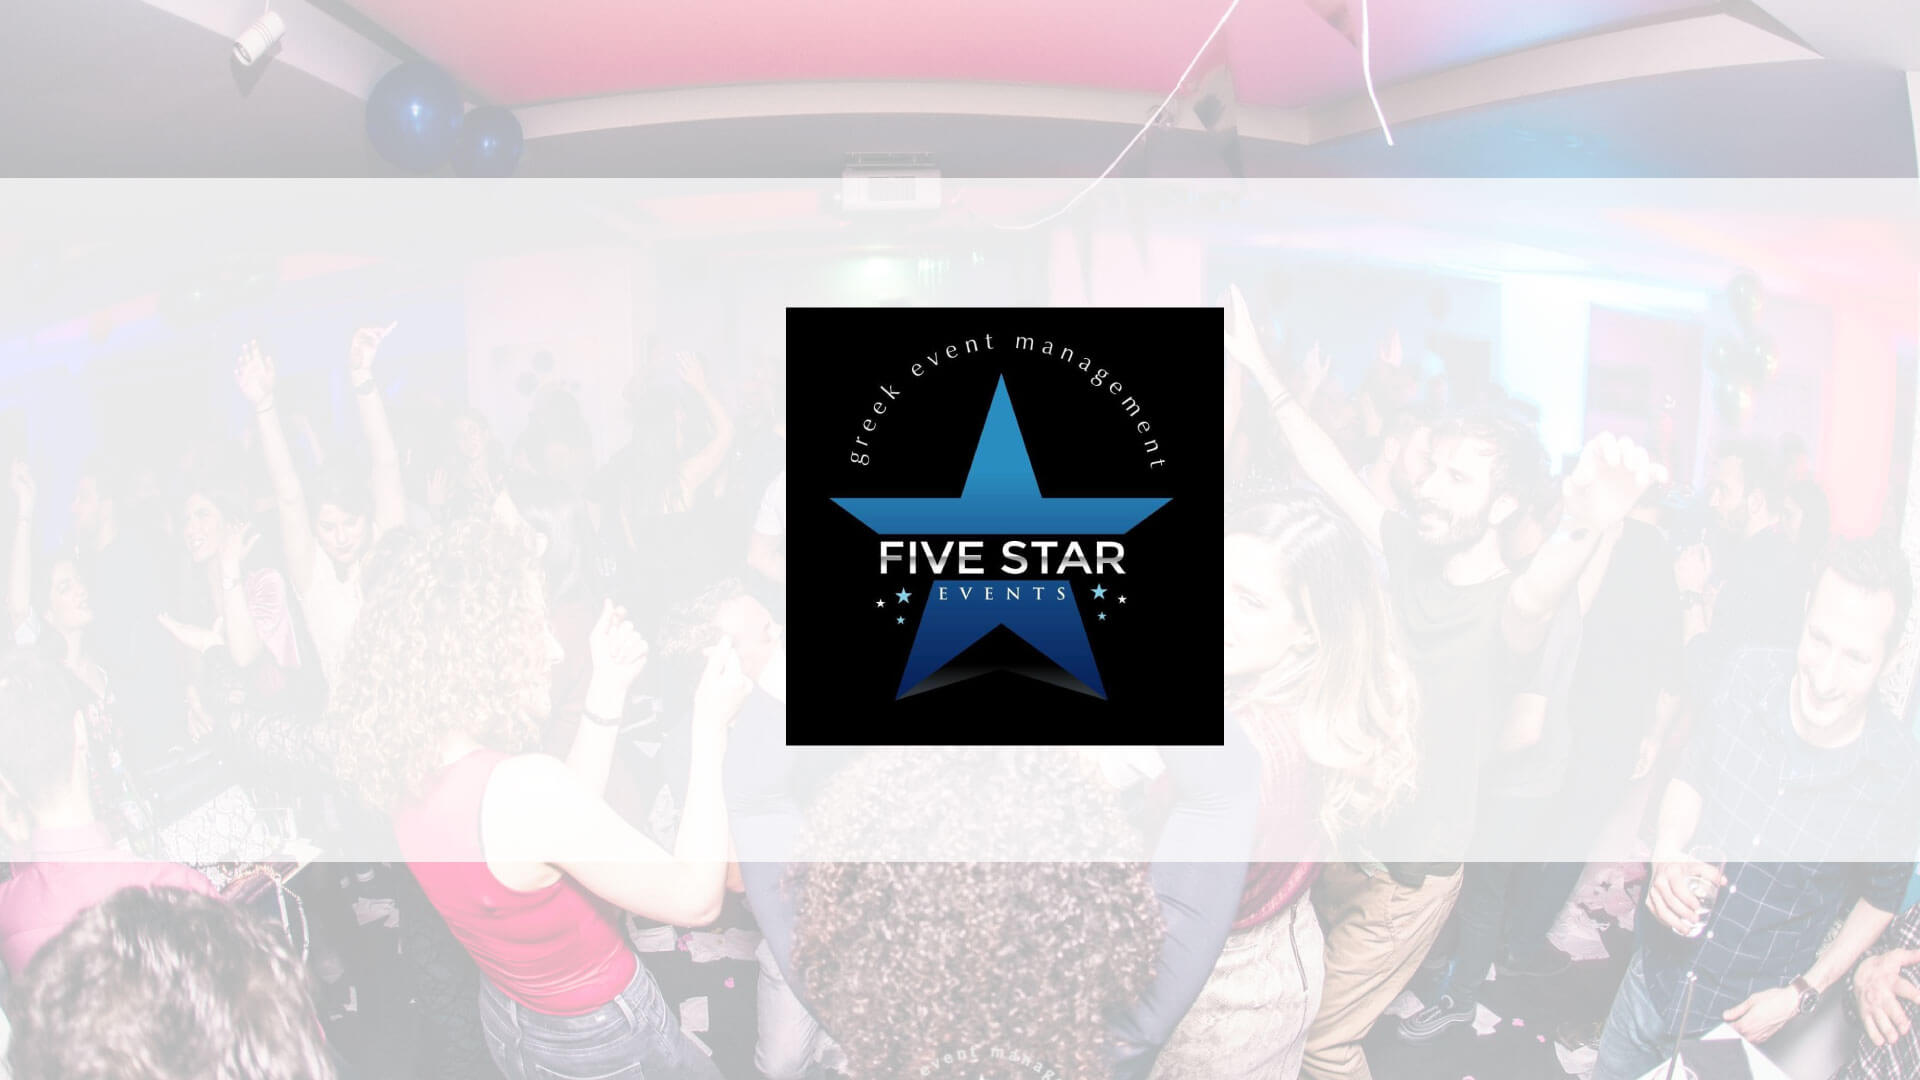 Five Star Events